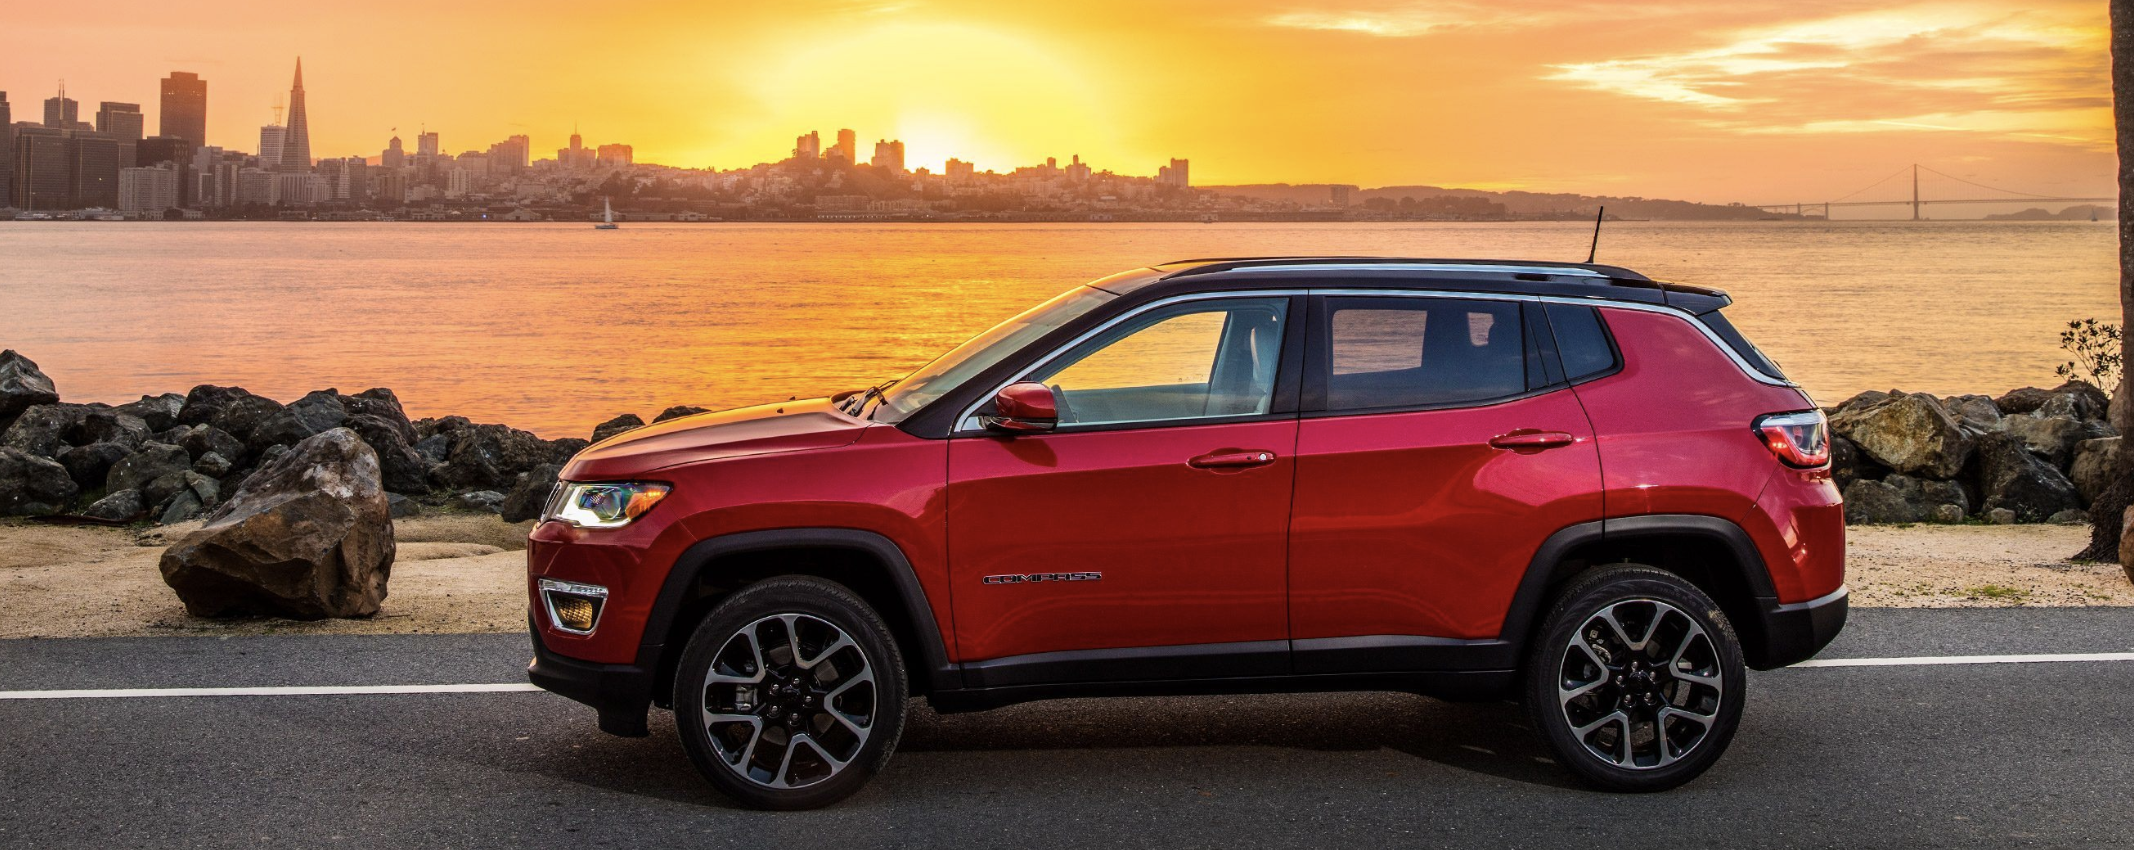 Picture of the new Jeep Compass